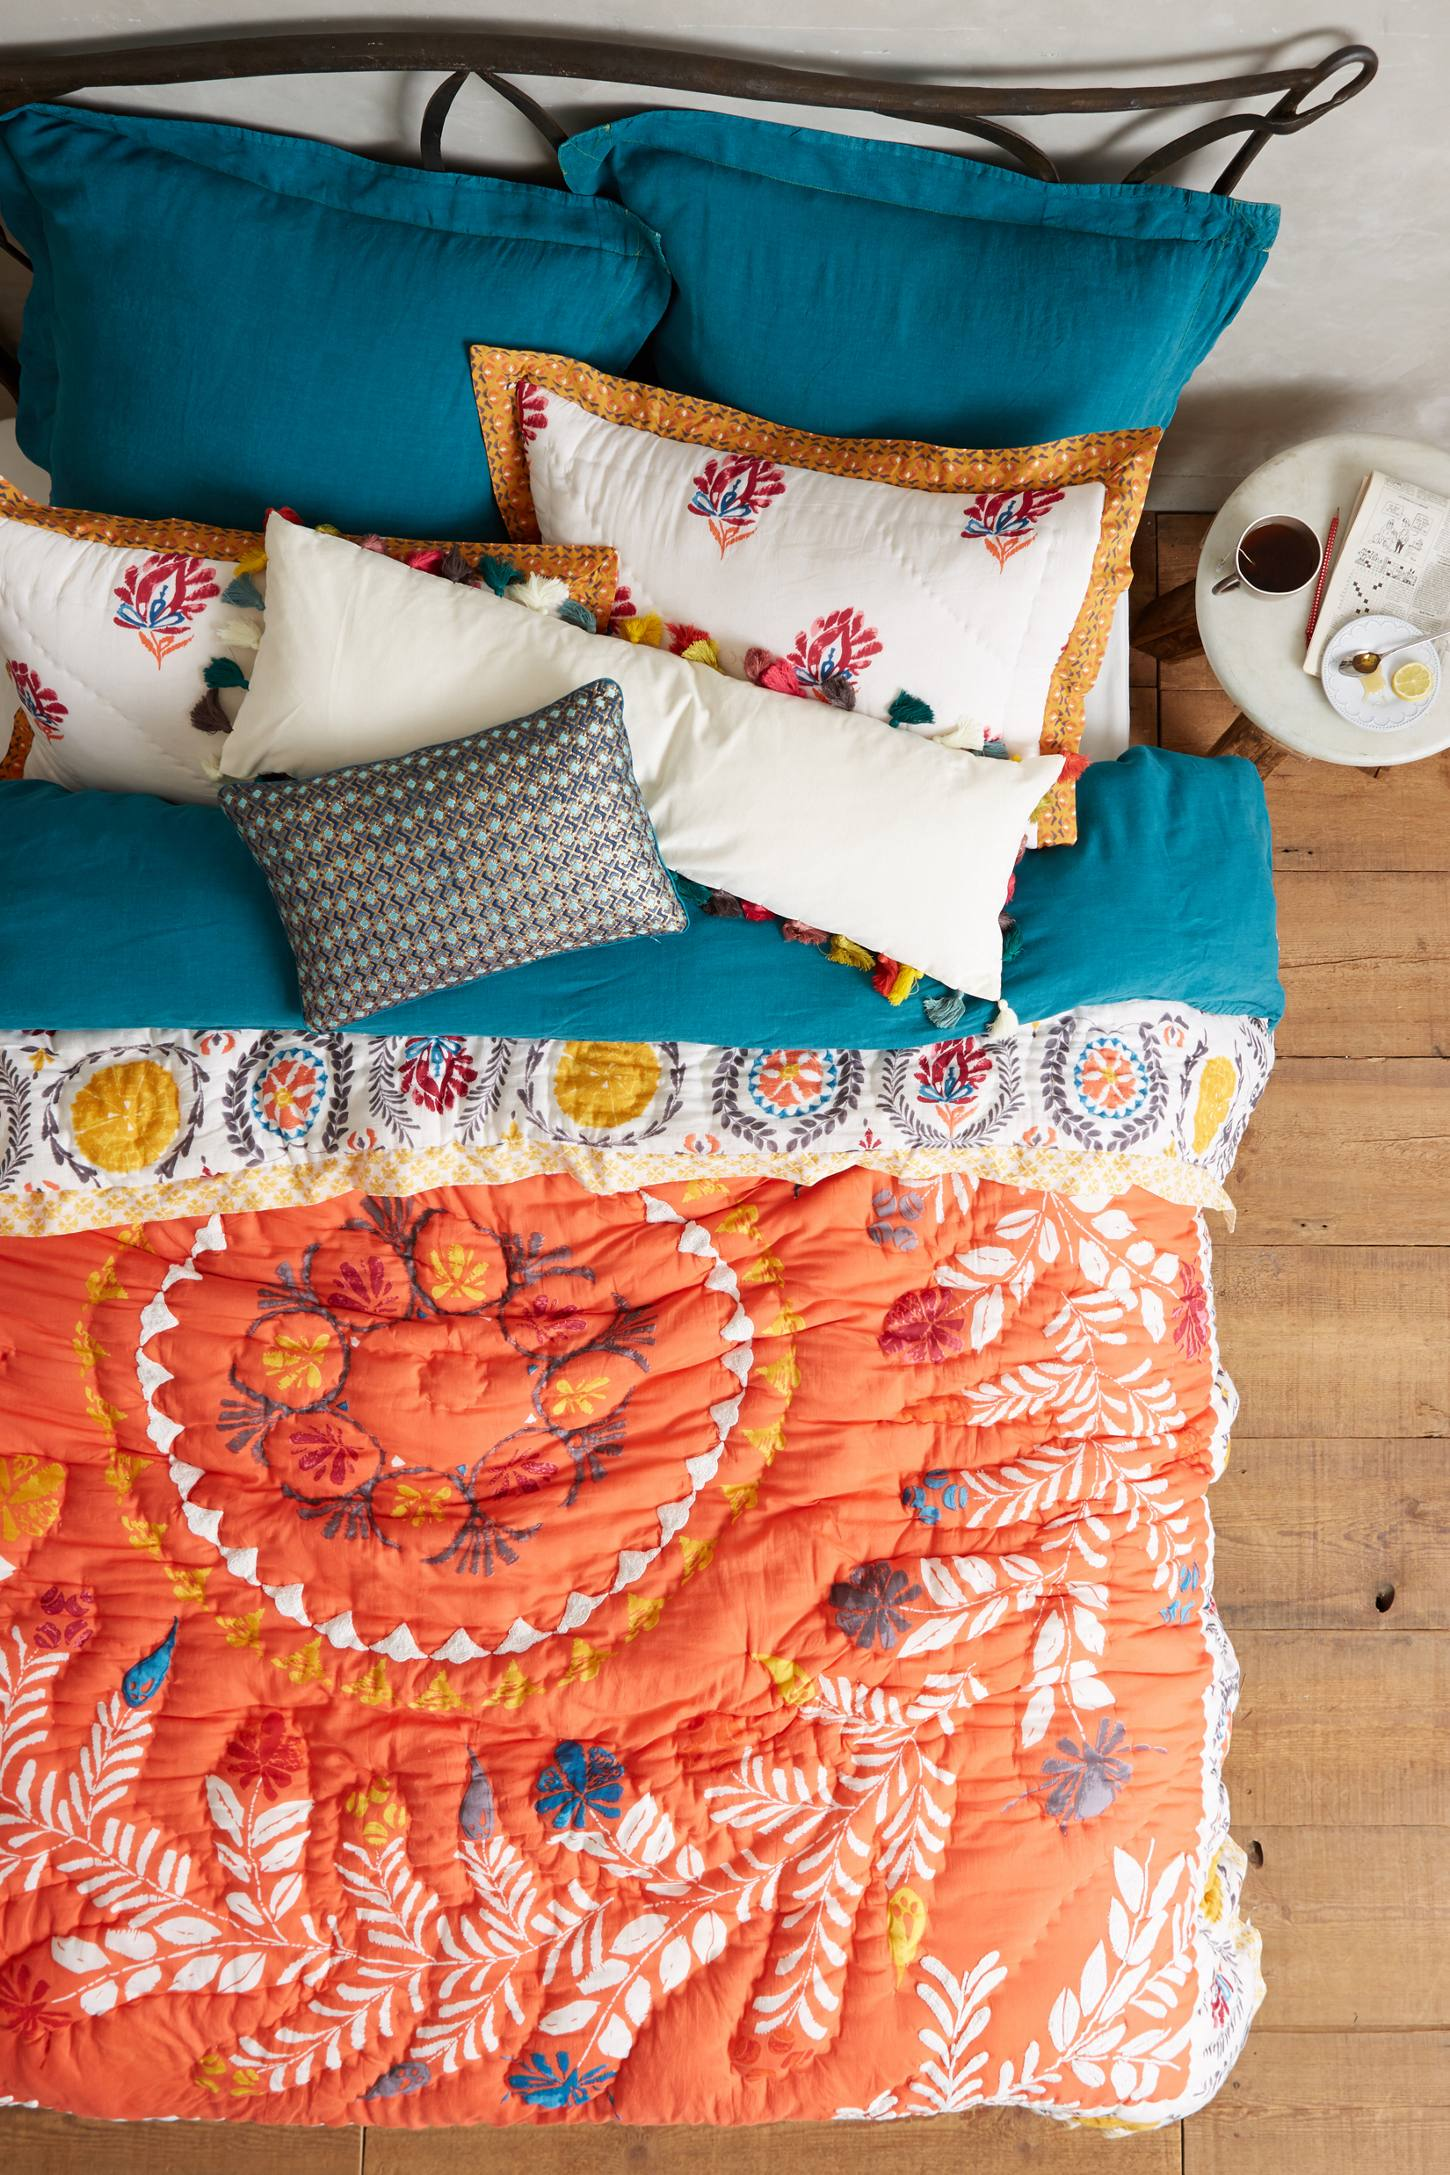 Anthropologie bedding - Anthropologie Bedding 26